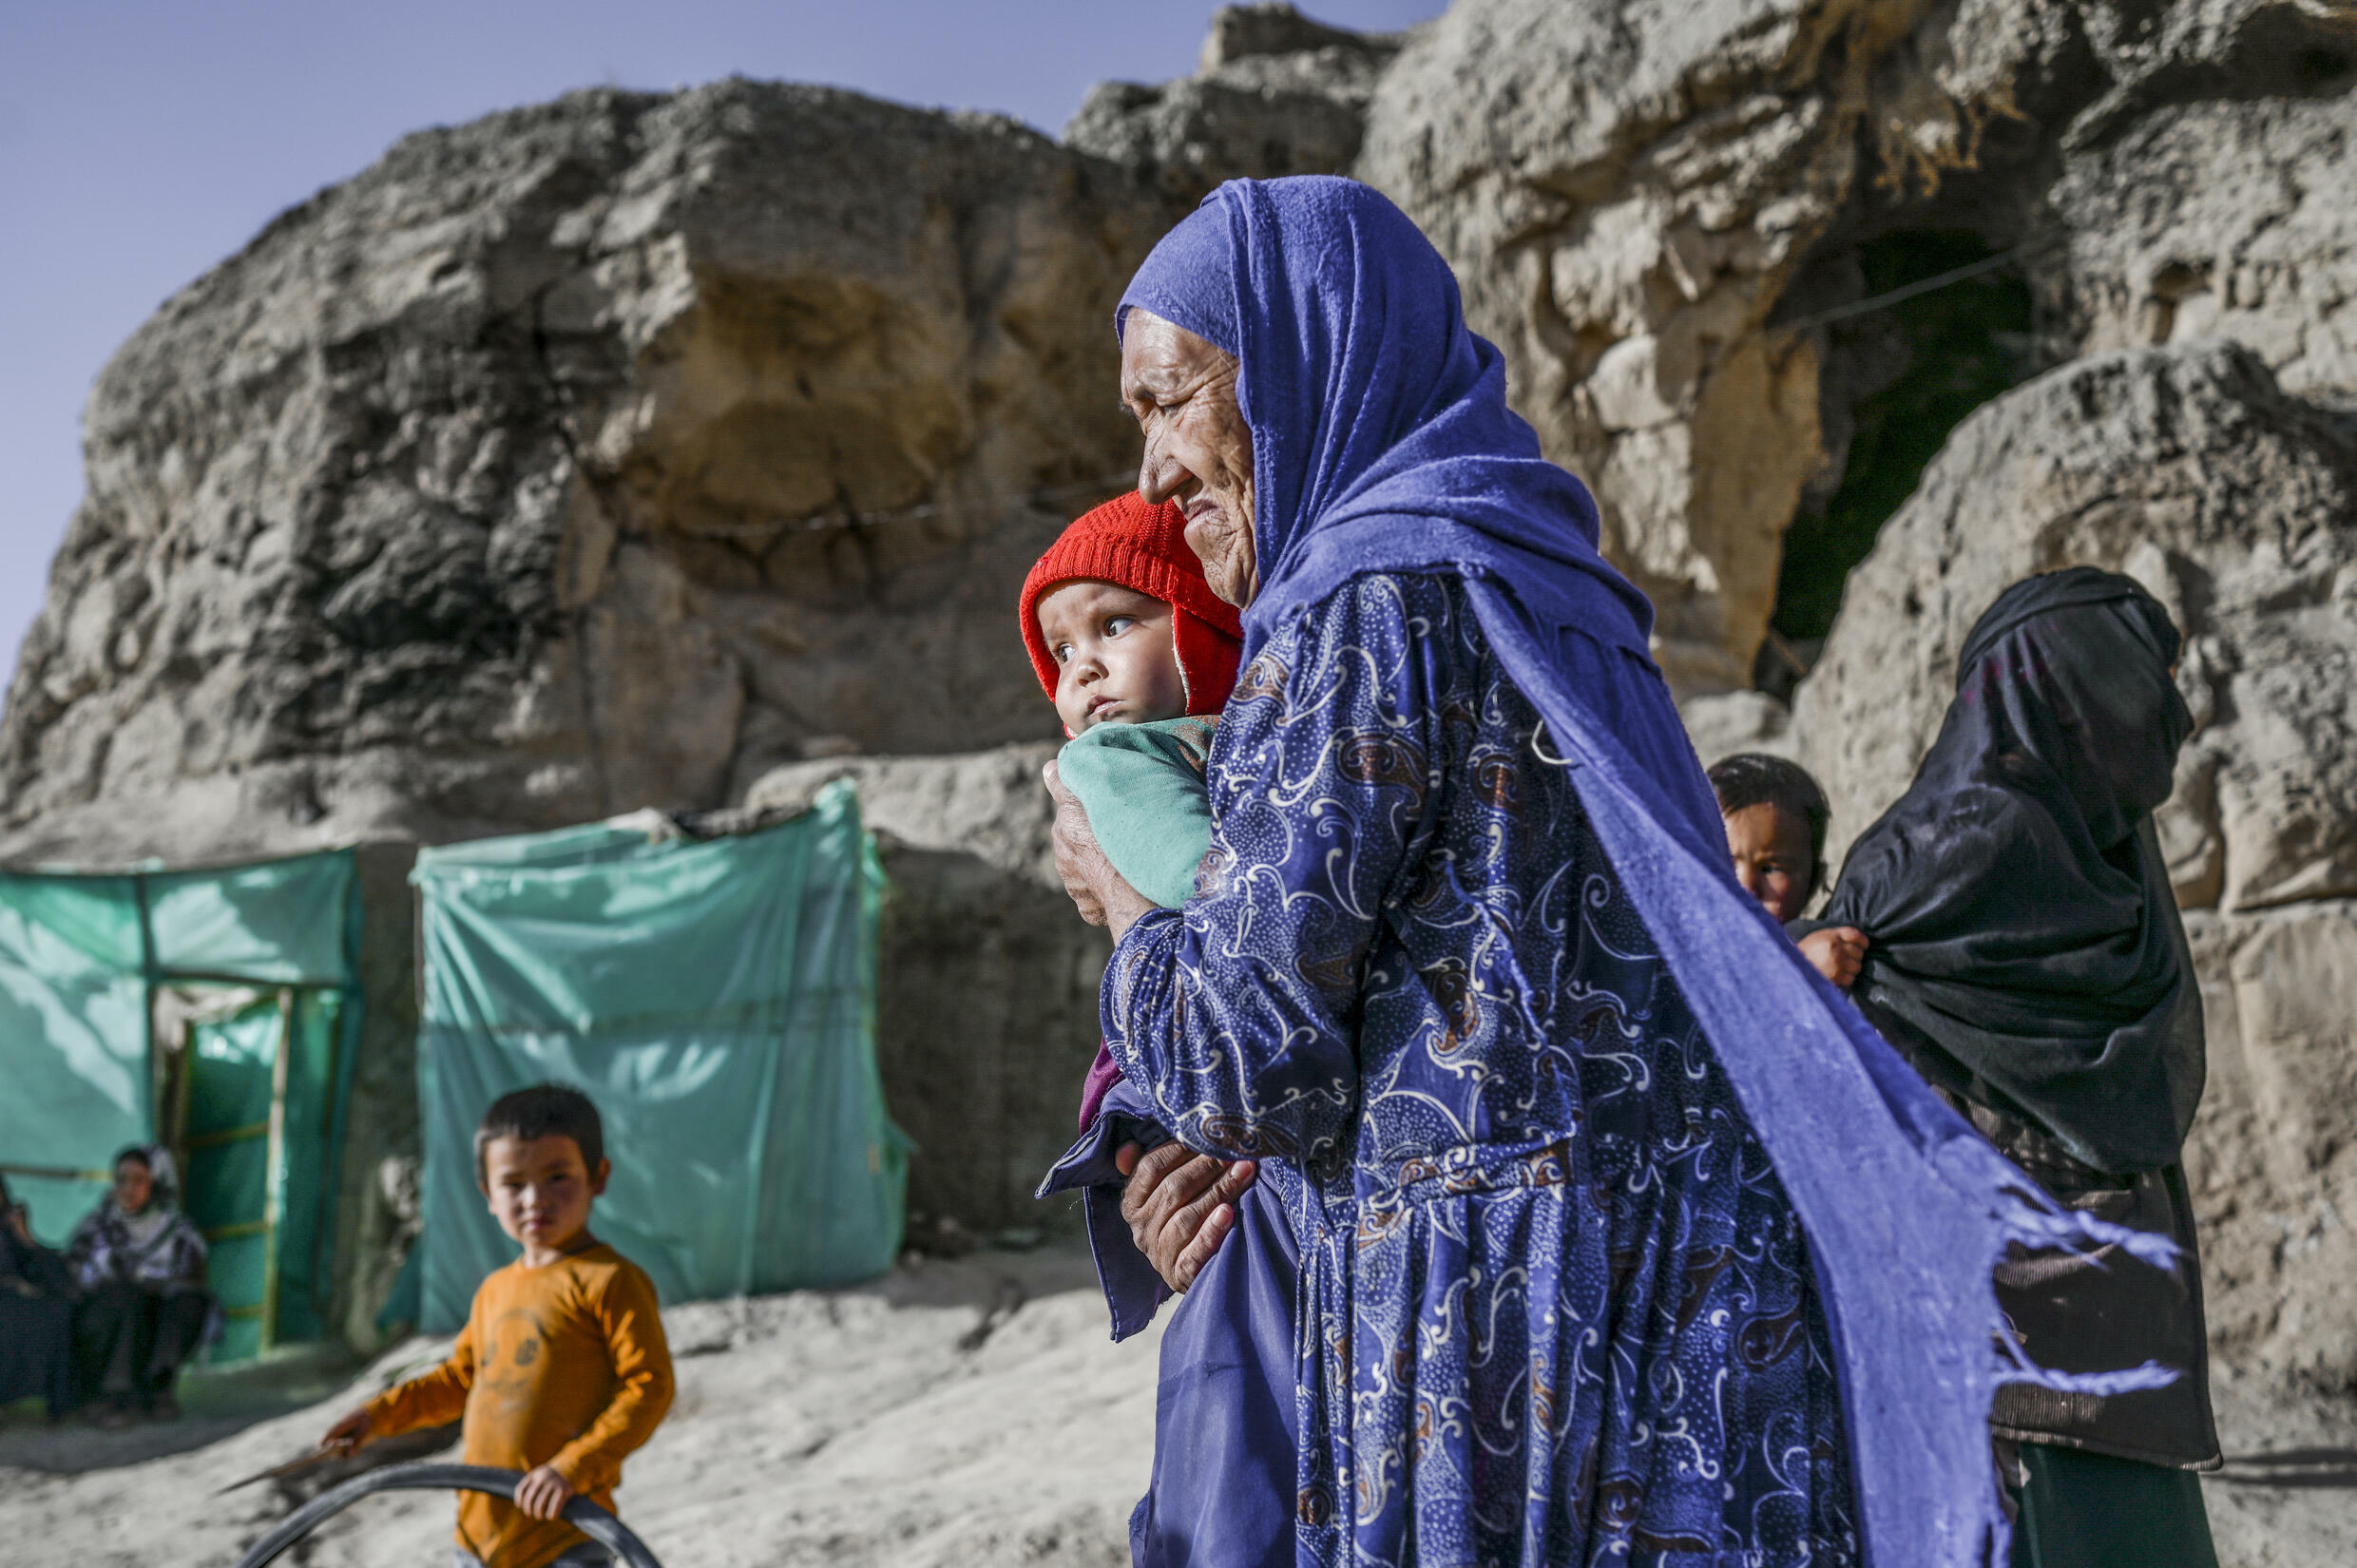 The Taliban takeover of Afghanistan has worsened the economic hardship of the community that lives in the mountainside caves of Bamiyan